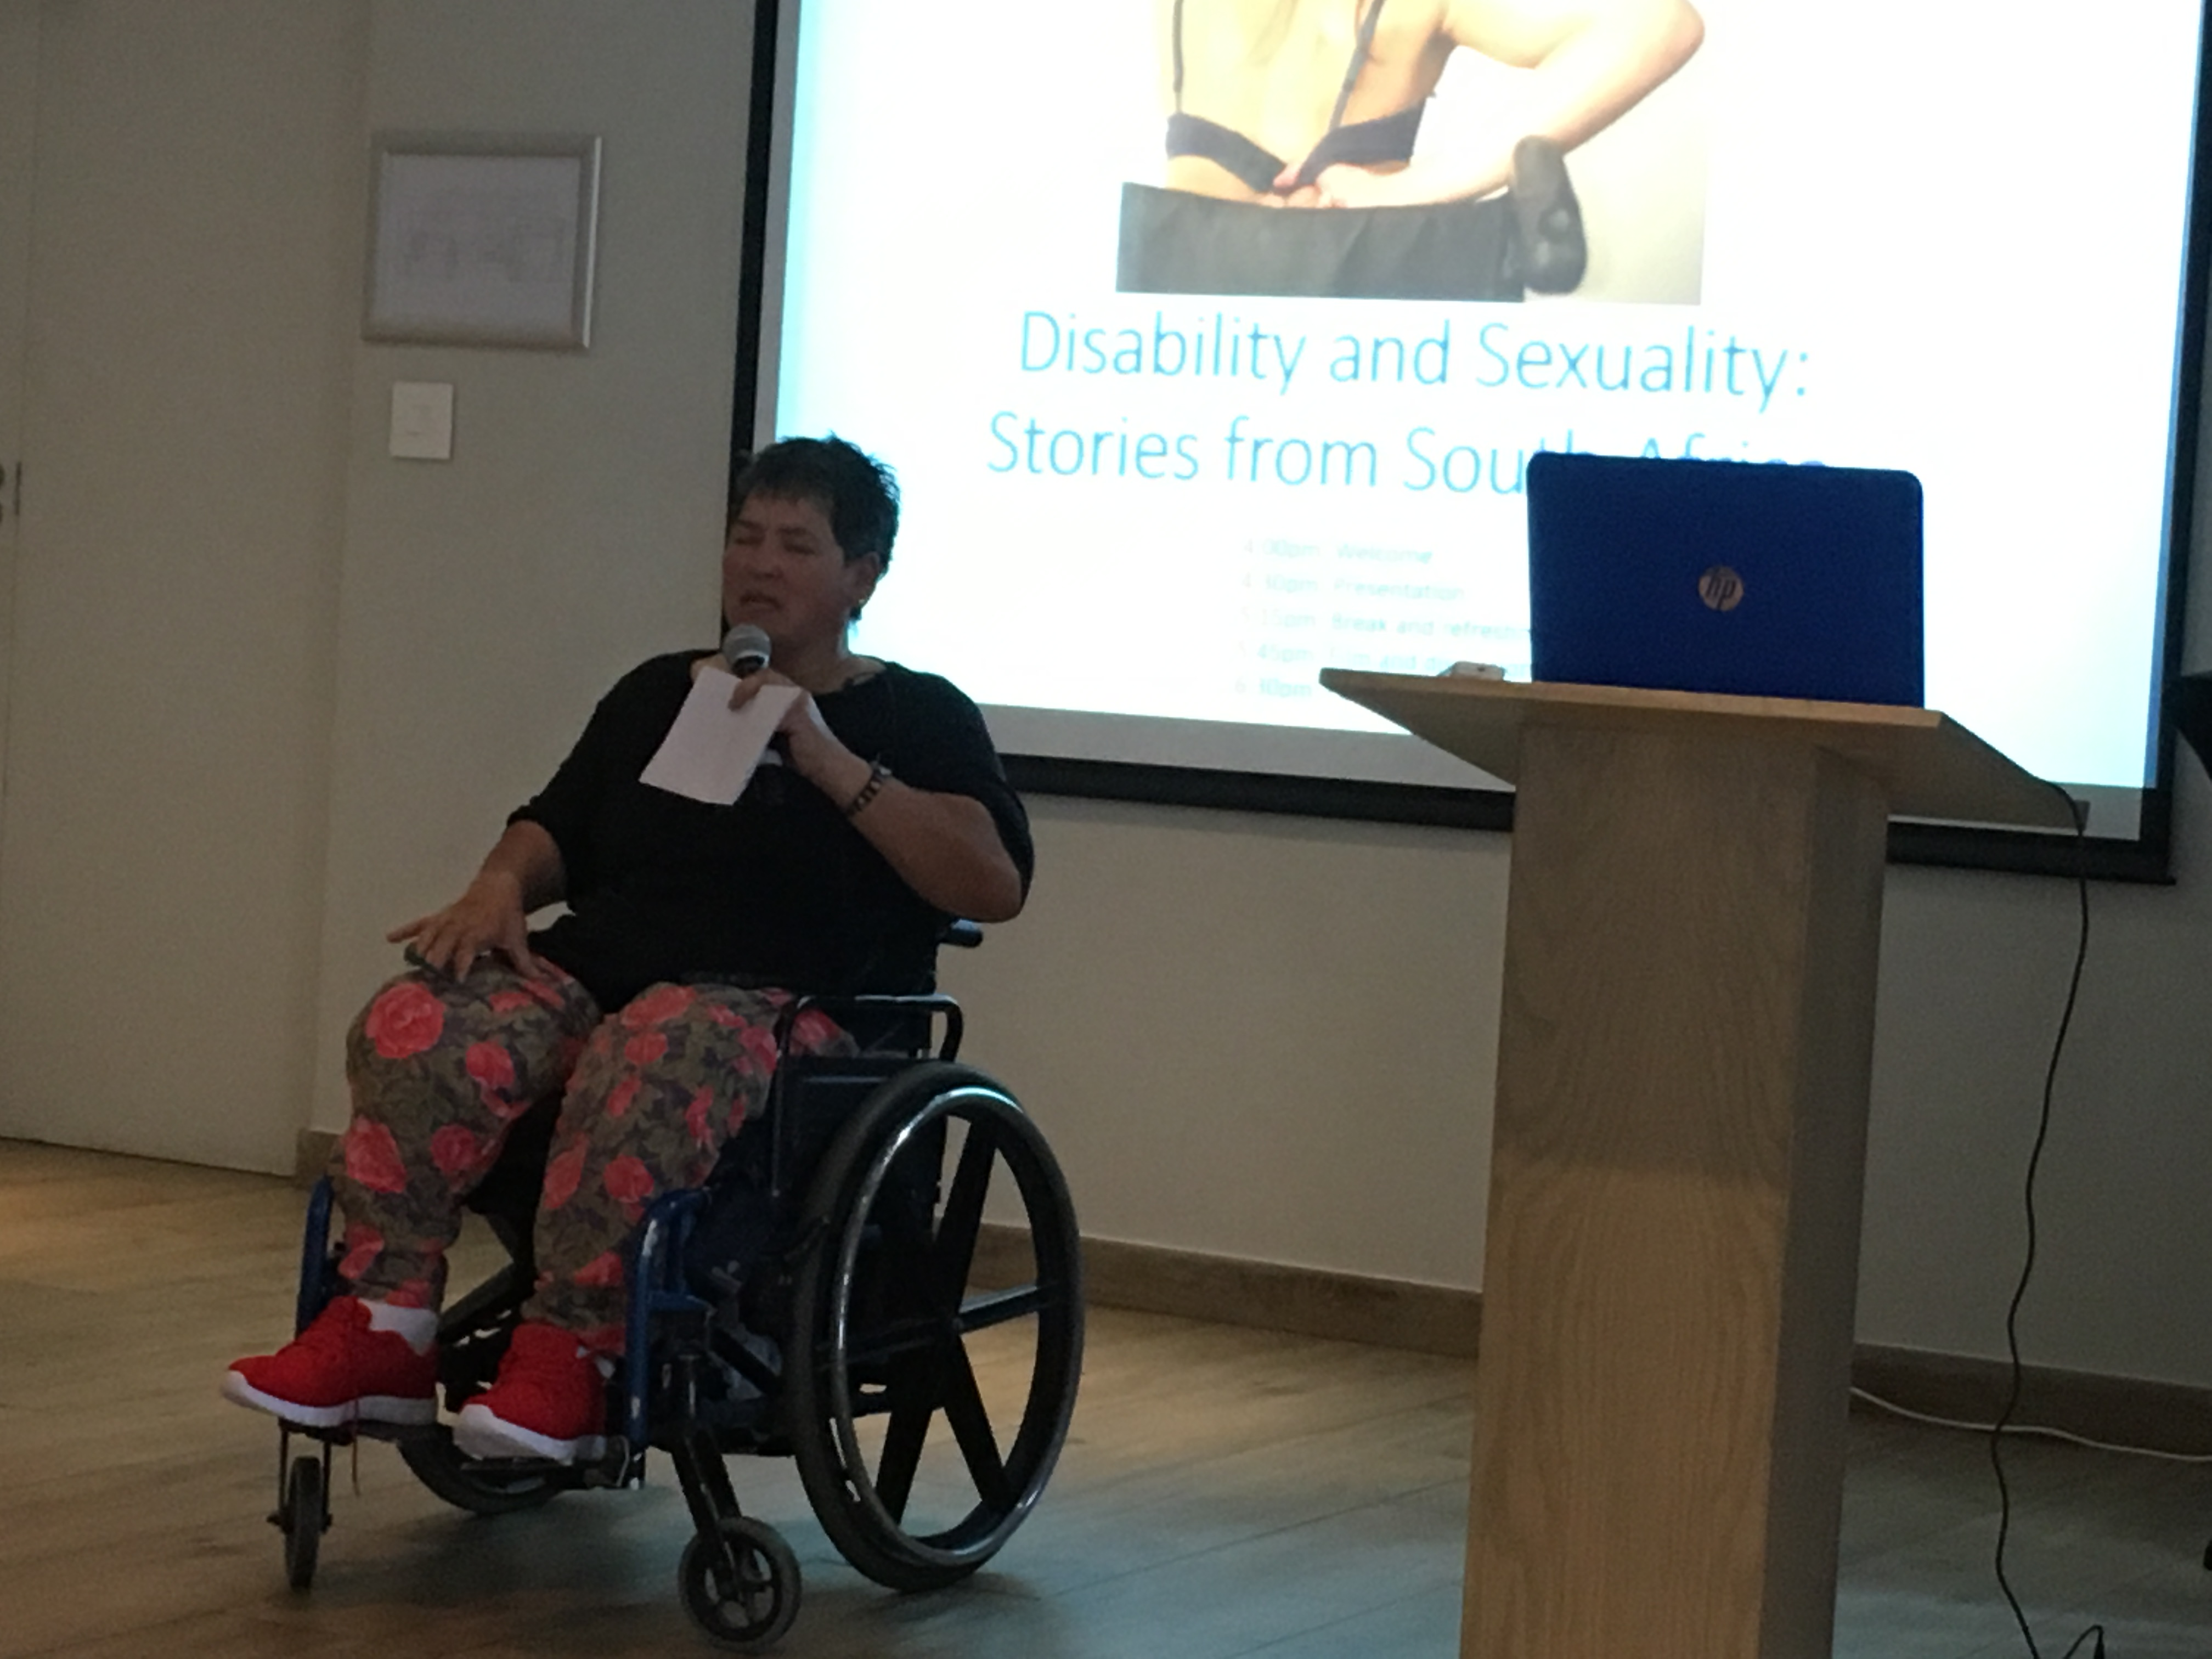 Disability and sexuality video